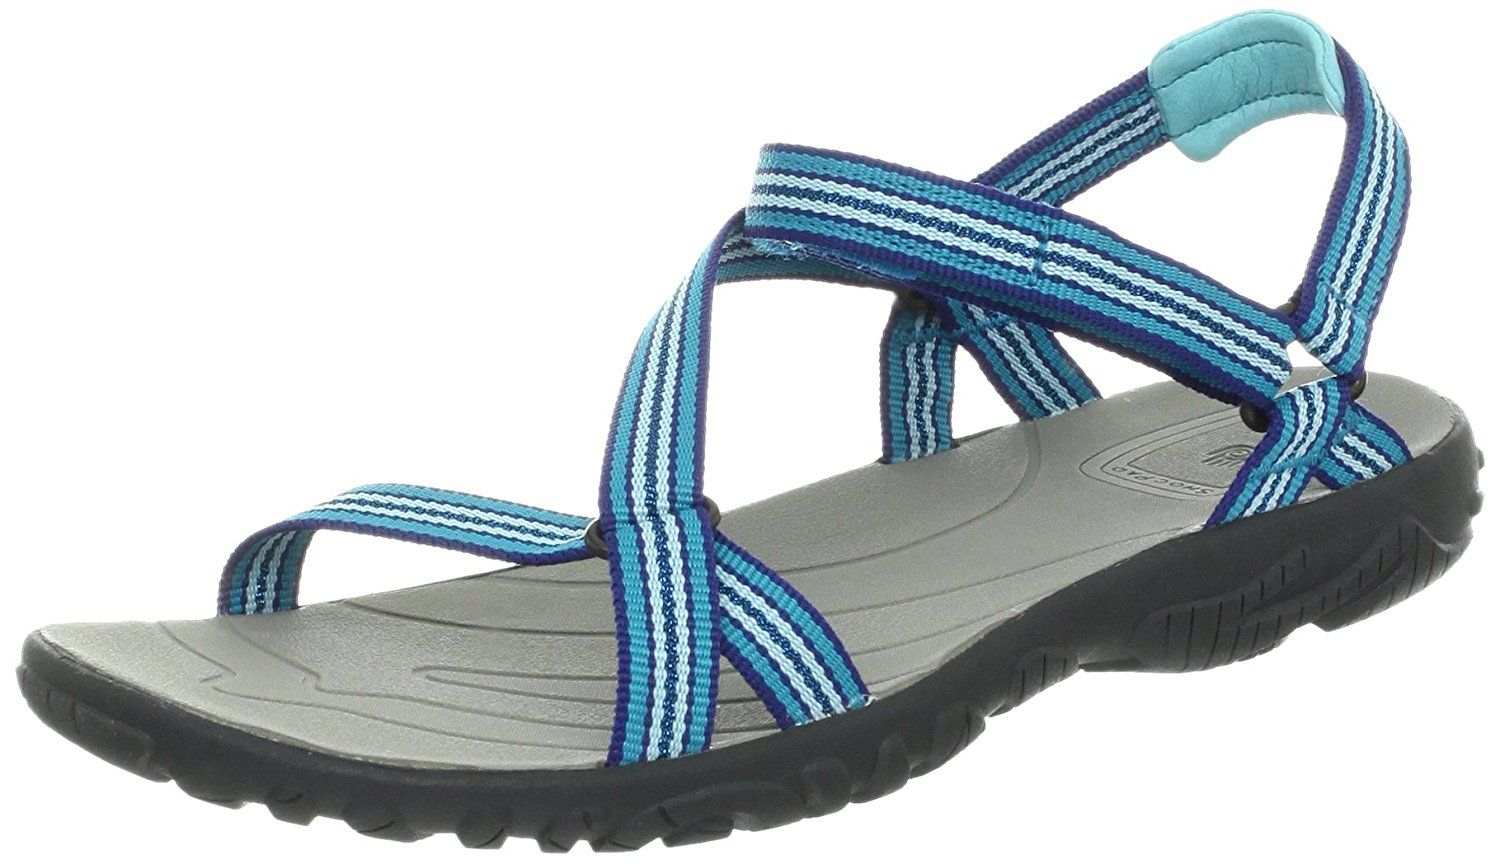 2f8d74049c2c9 Teva Zirra Kids Sandal     Find out more details by clicking the image - Girls  sandals